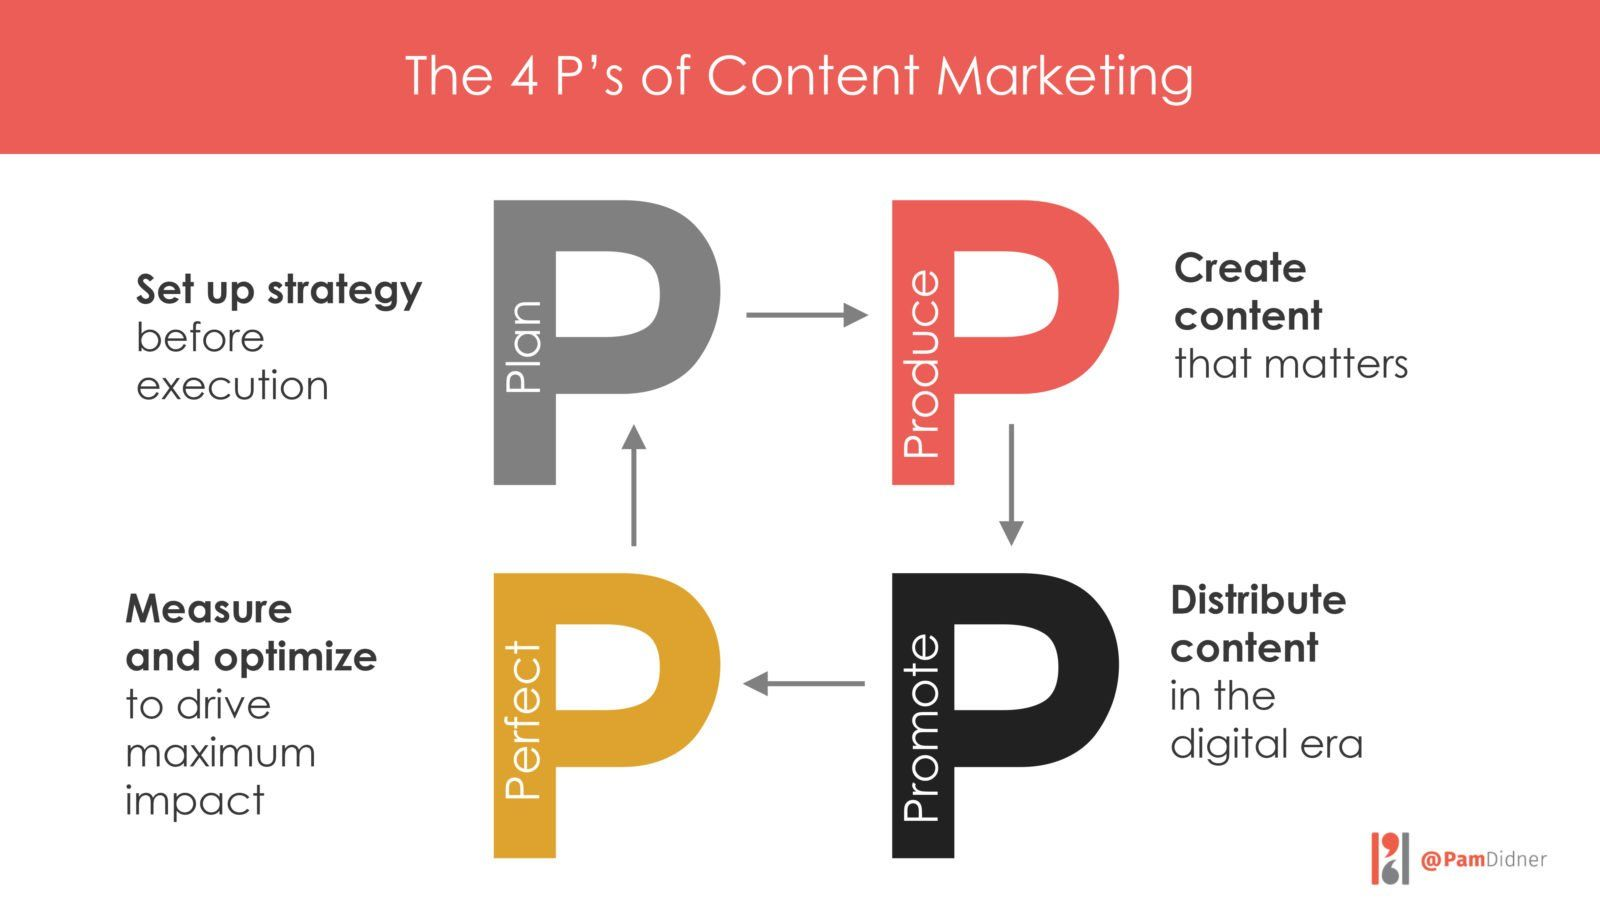 The 4 P's of Content Marketing